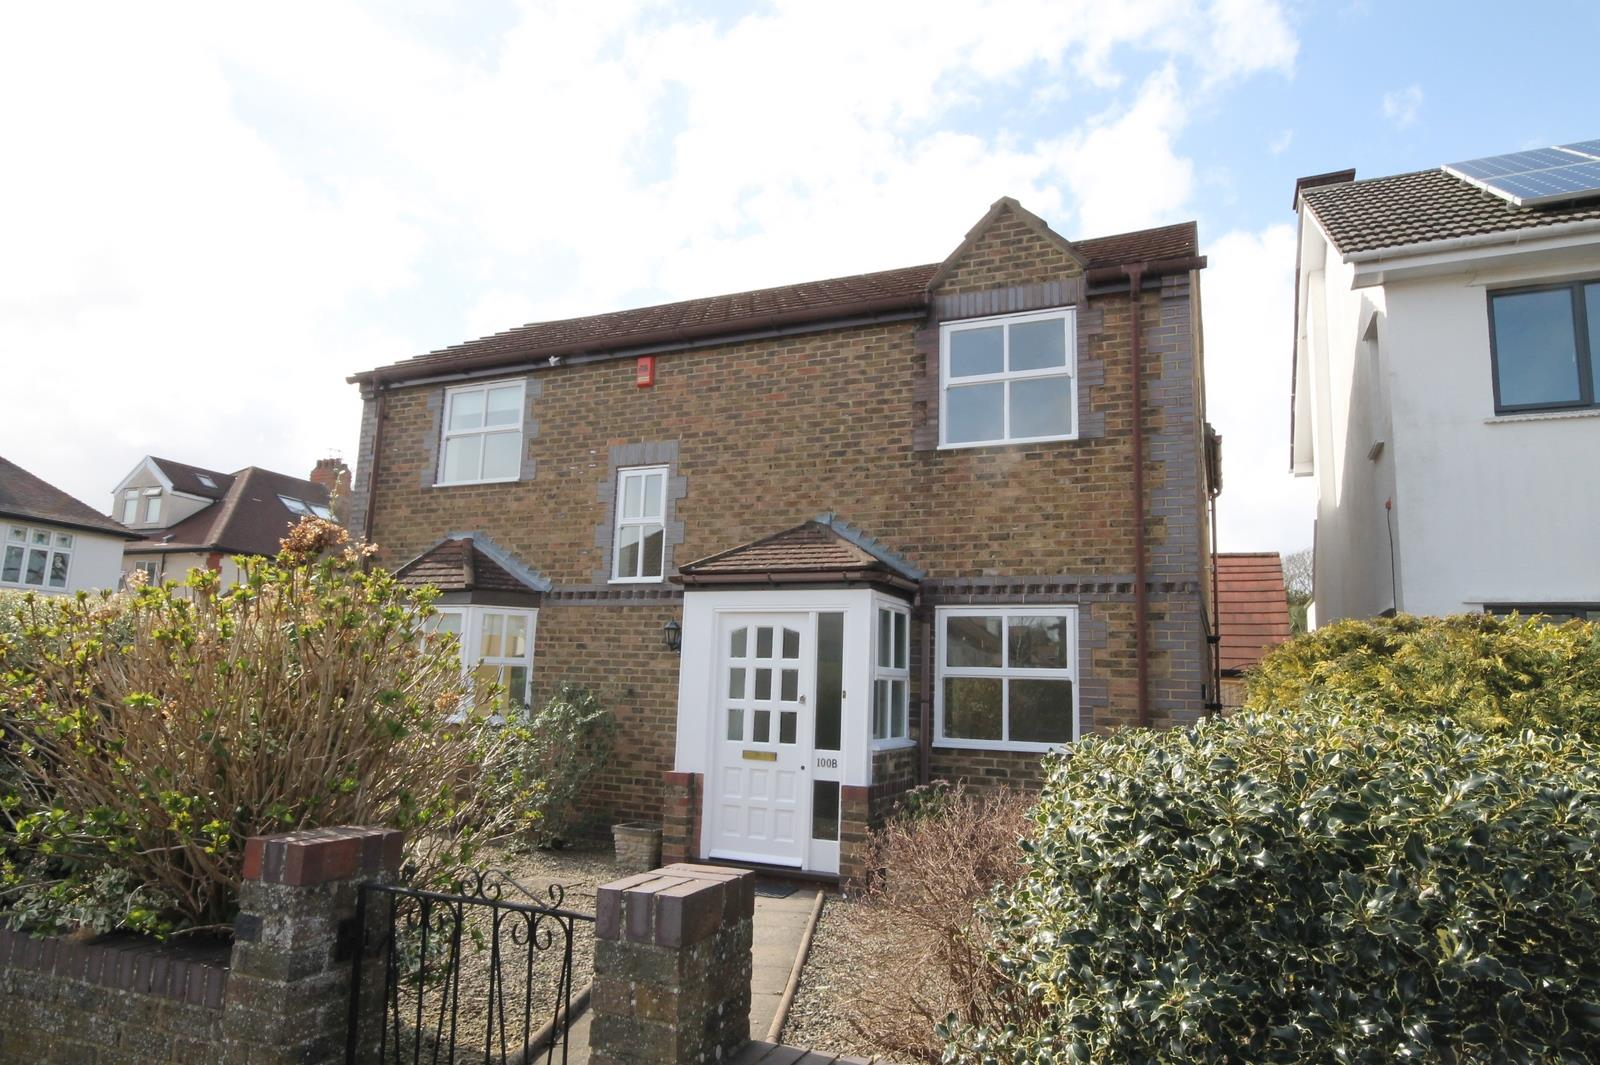 4 bed house to rent in Reedley Road, Bristol, BS9